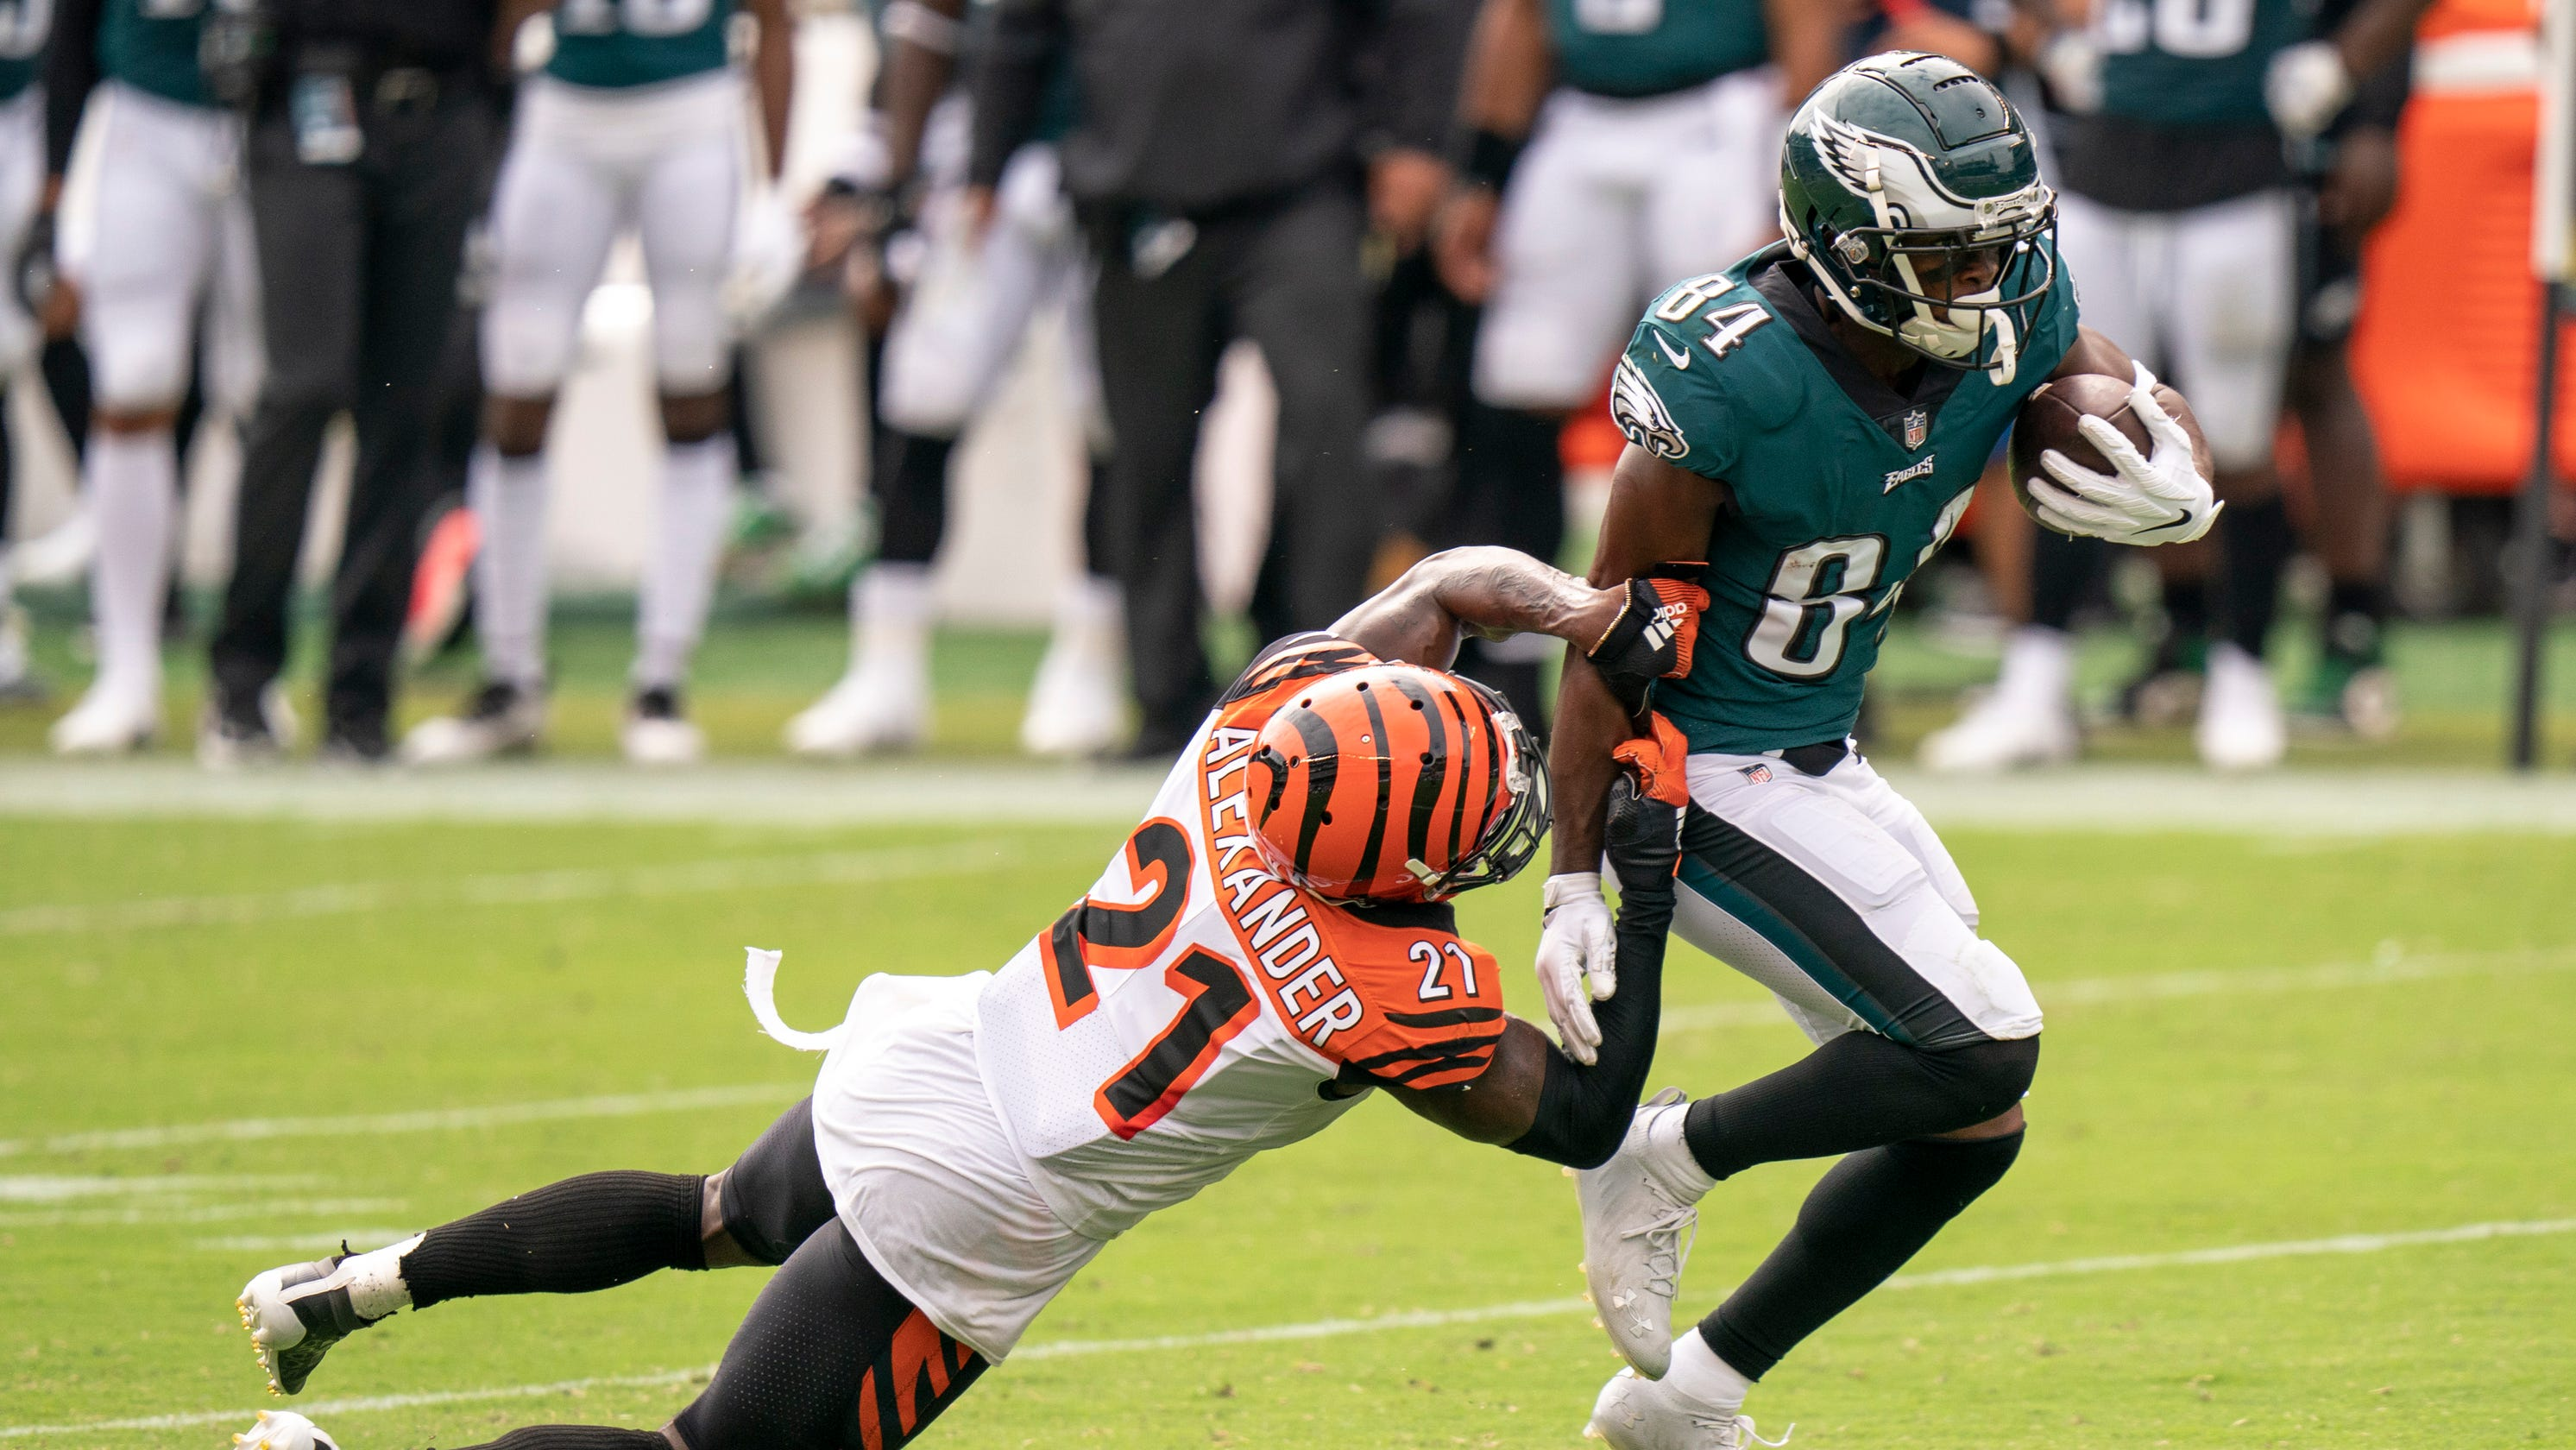 Philadelphia Eagles have only 1 healthy wide receiver in Greg Ward